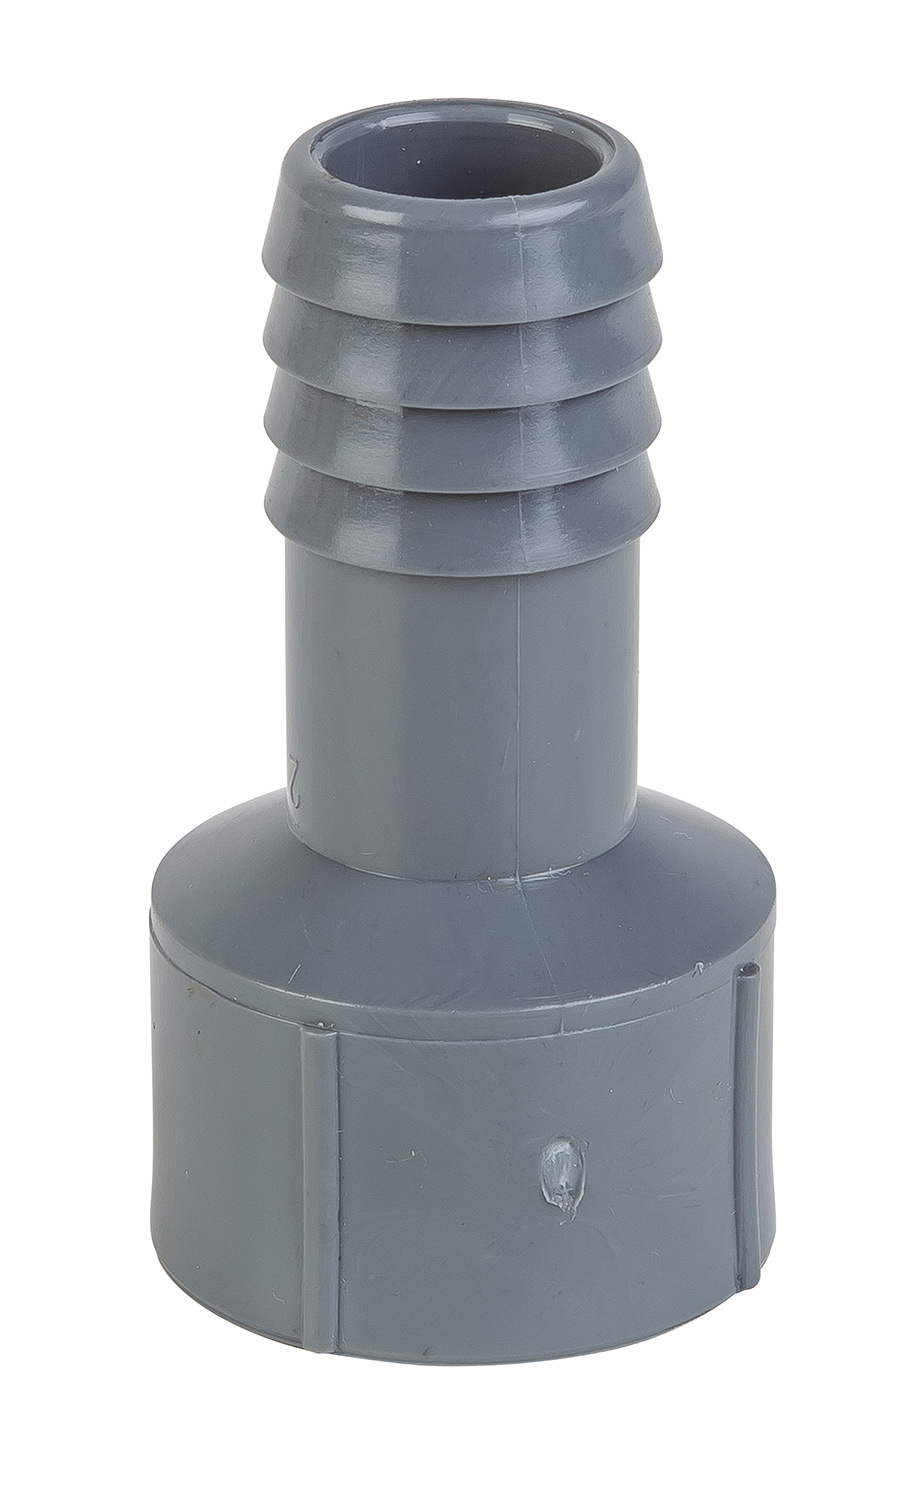 3/4'' FEMALE NPT THREAD TO 3/4'' BARB FITTING EIGHT.3 2017